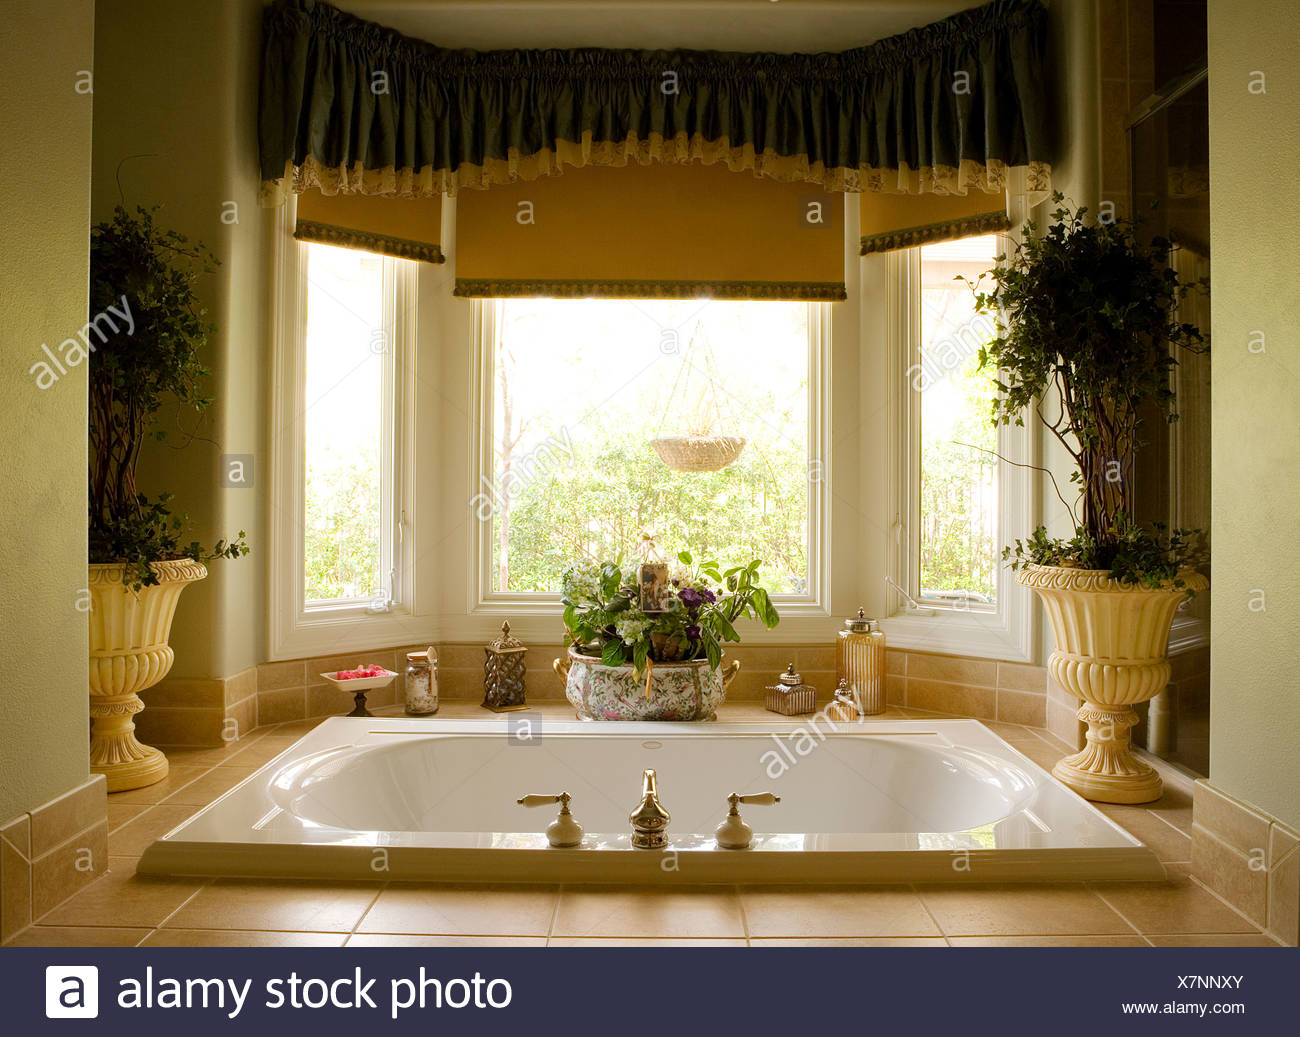 Large Jacuzzi Tub In Master Bathroom Stock Photo 280146691 Alamy